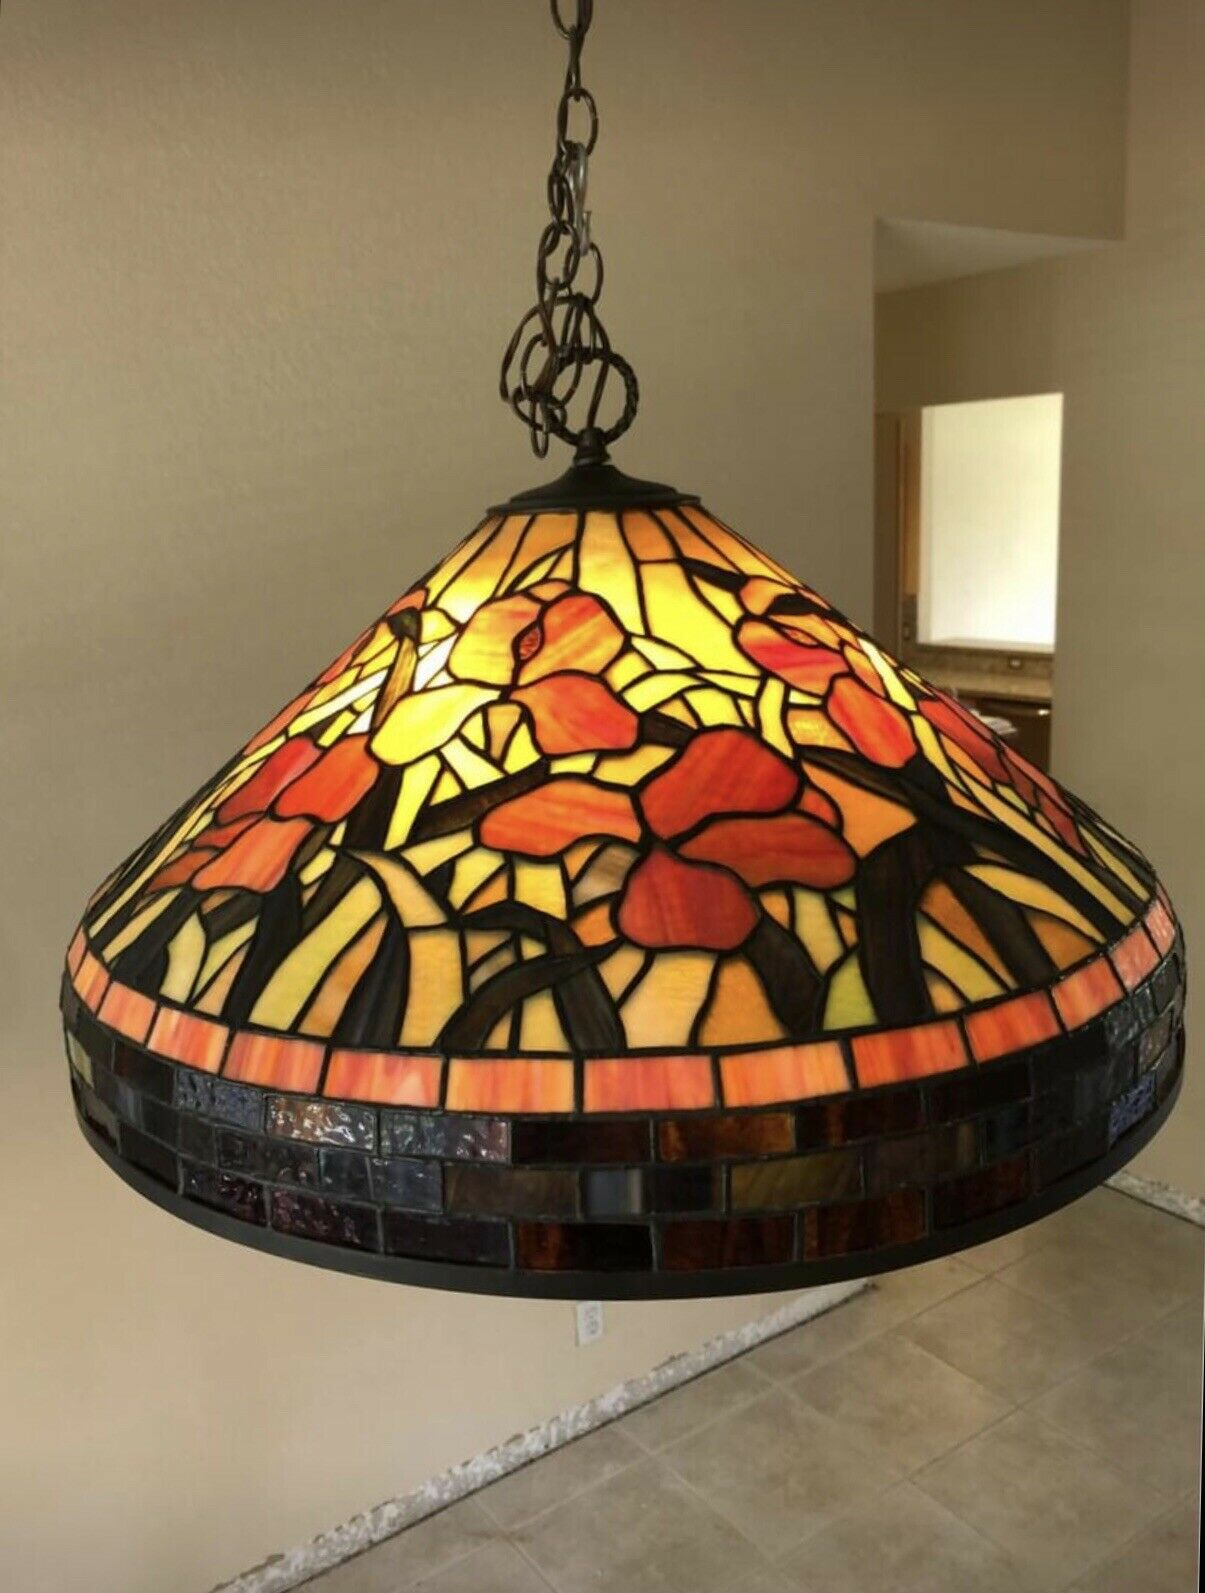 Tiffany Style Vintage Hanging Ceiling Lamp Stained Glass Light Chandelier 28in For Sale Online